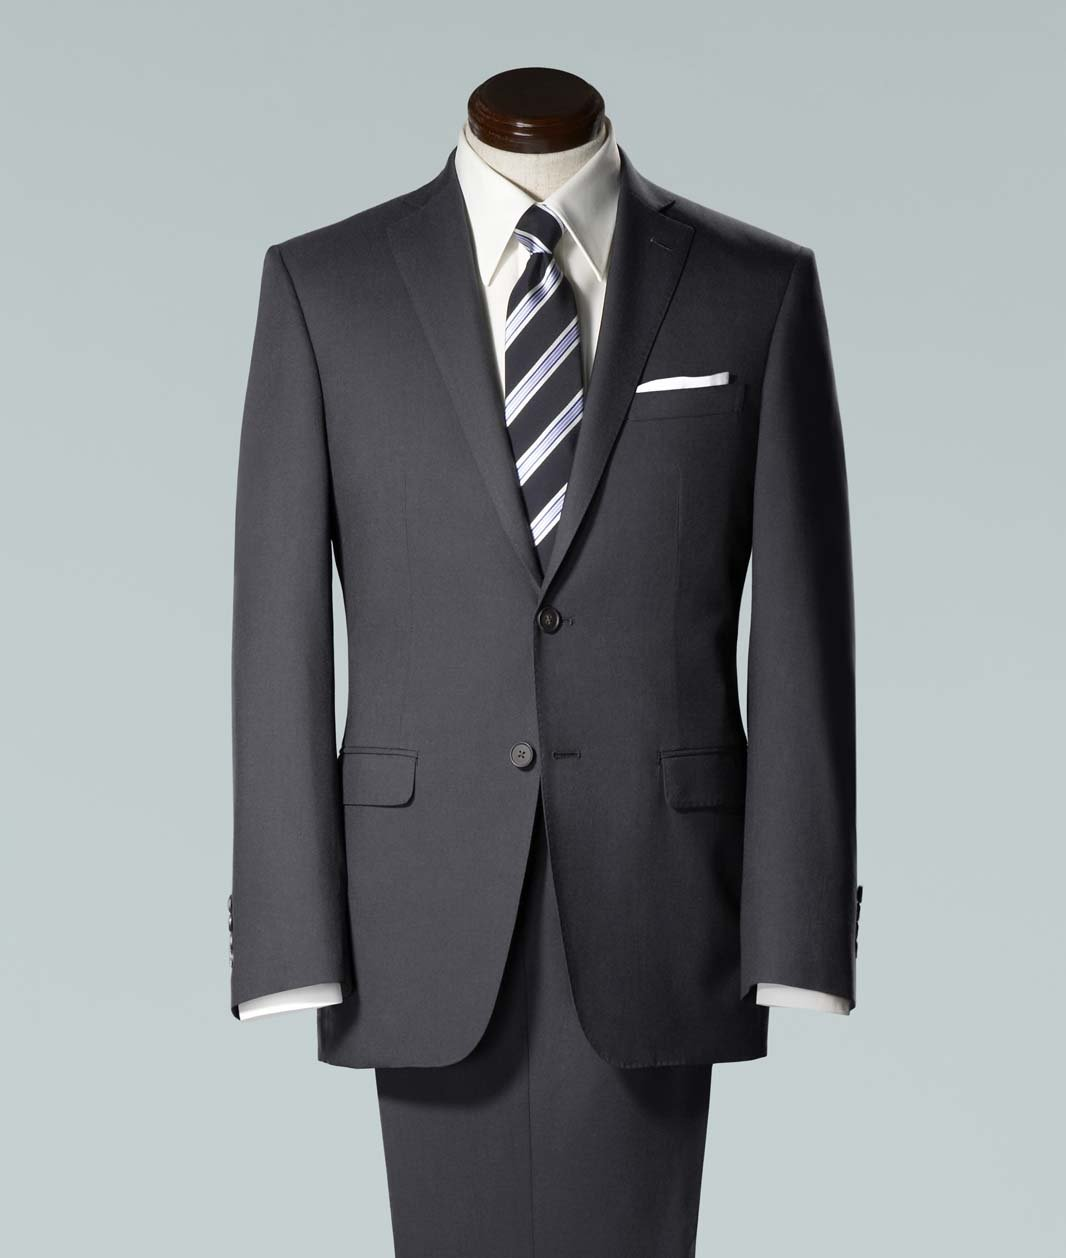 Is your suit a relic of the past